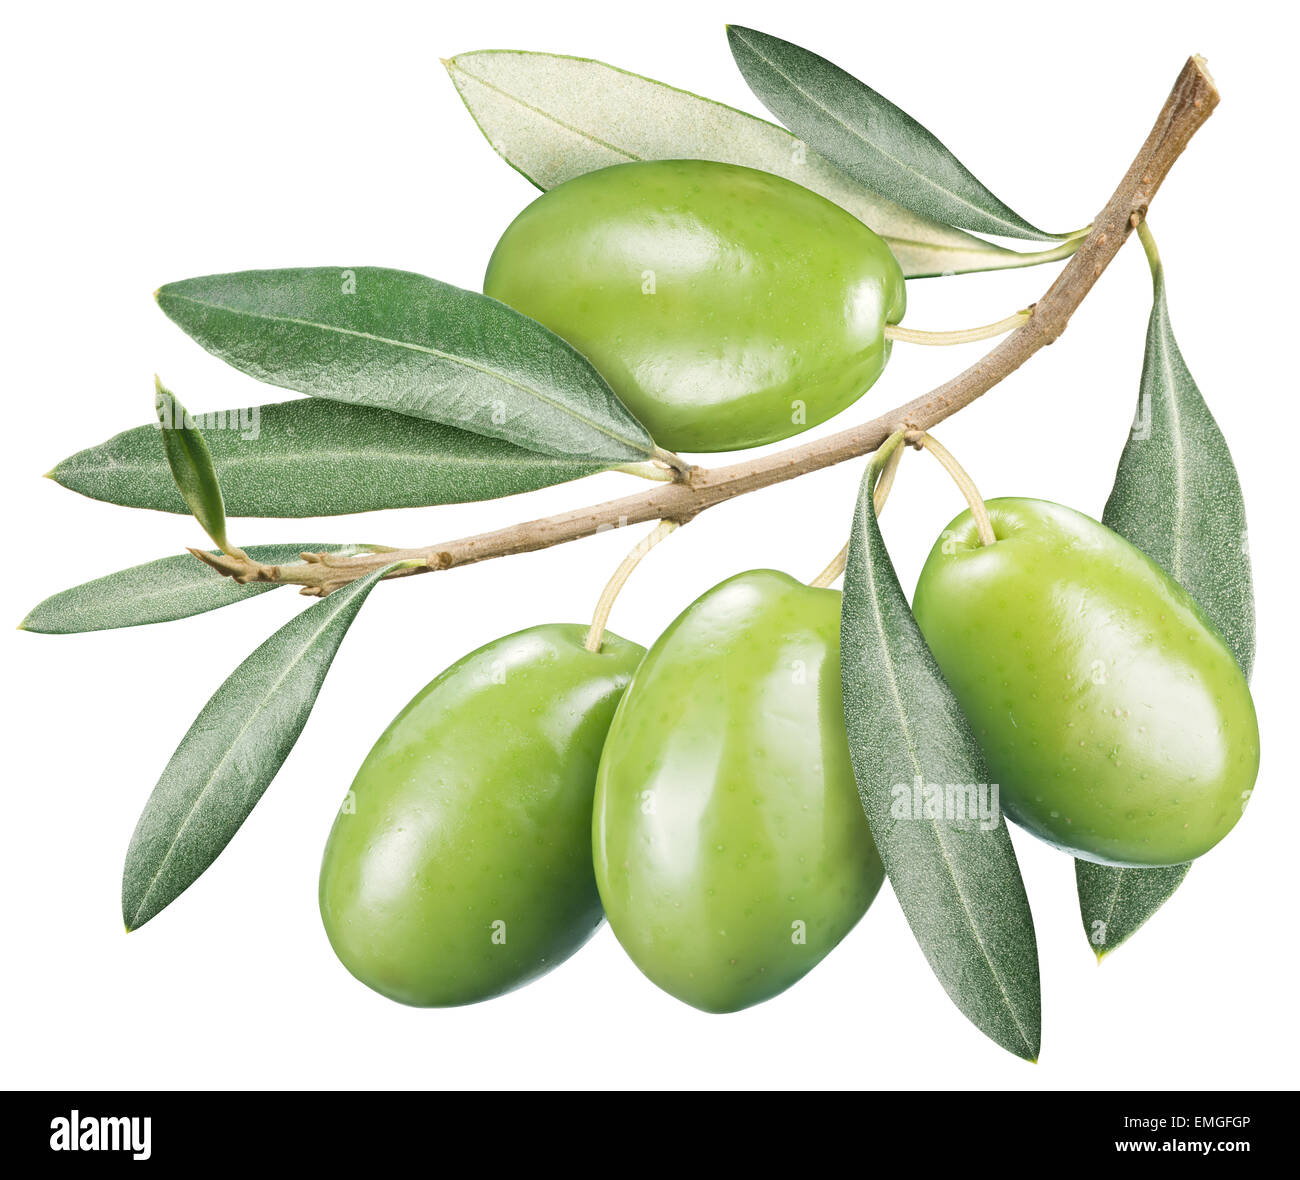 Green olives with leaves on a white background. File contains clipping paths. - Stock Image